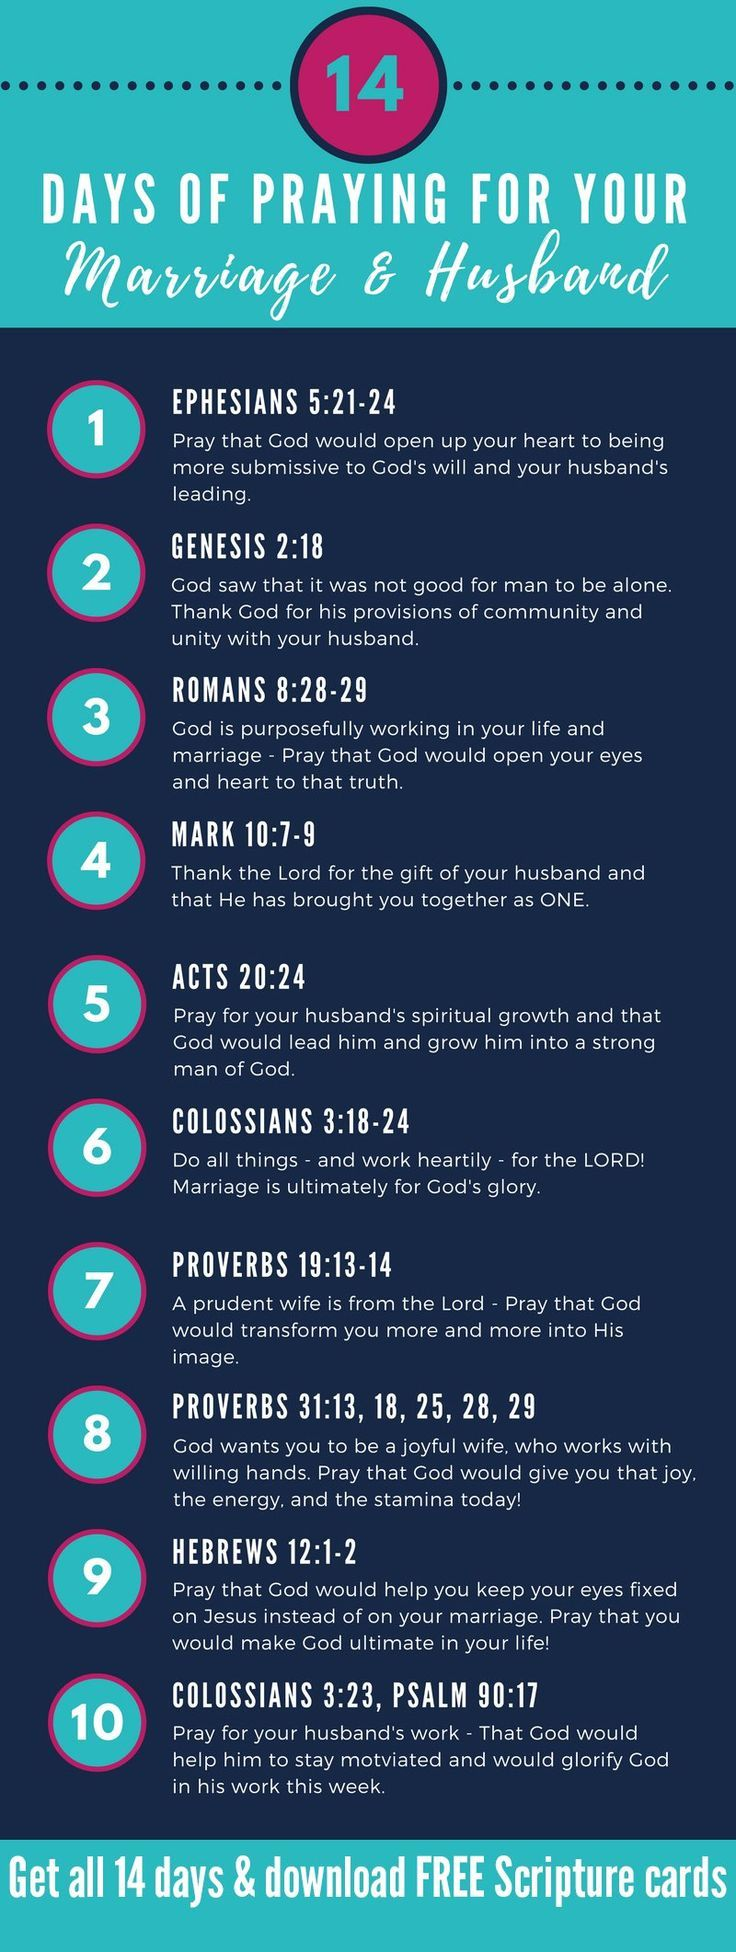 As Christian wives, we are called to pray for our marriage and husband daily! This free 14 Days of Prayer For Your Marriage & Husband Challenge and Scripture card set will help you to do just that!